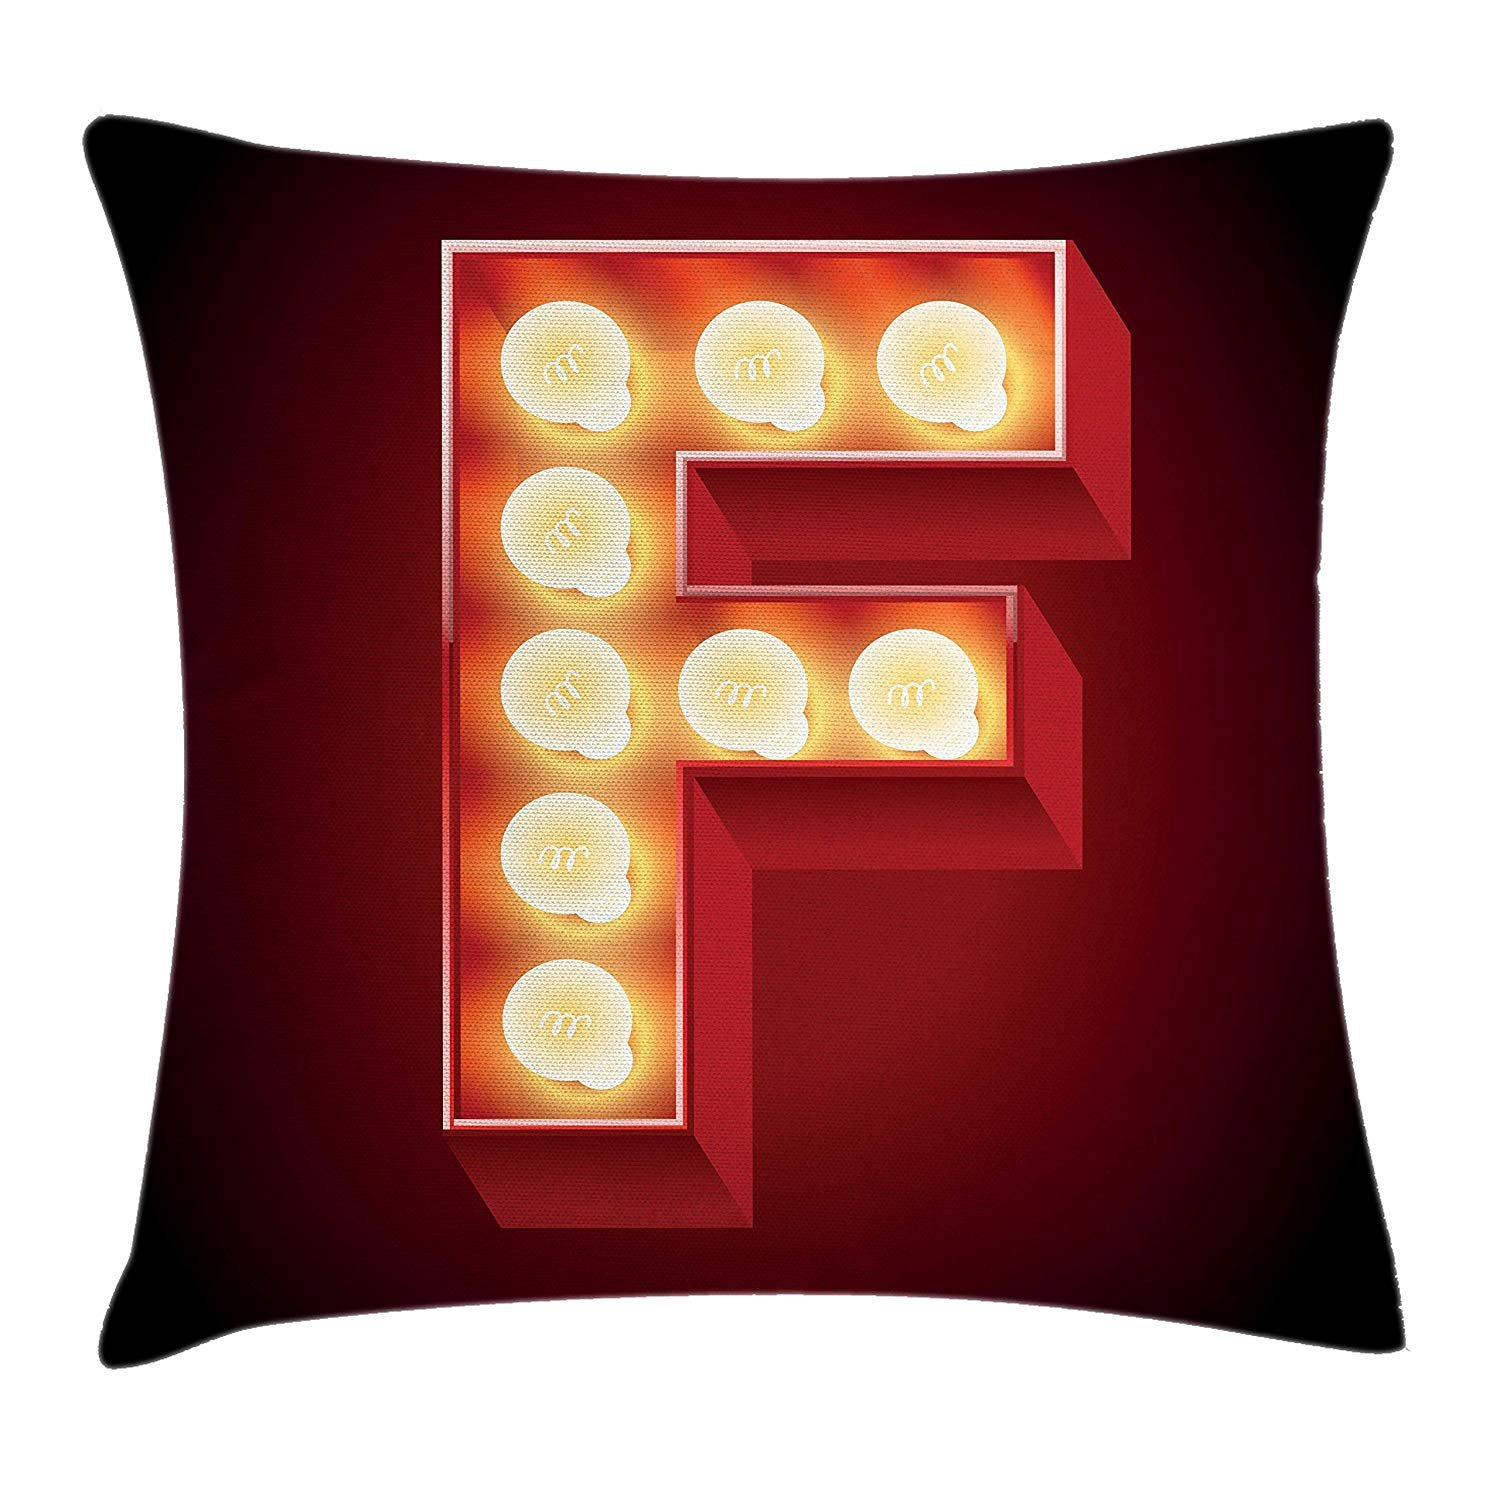 Queen Area Letter F Capital F Typescript Nightlife Disco Clubs Casino Movie Theater Font Print Square Throw Pillow Covers Cushion Case for Sofa Bedroom Car 18x18 Inch, Ruby Yellow Black